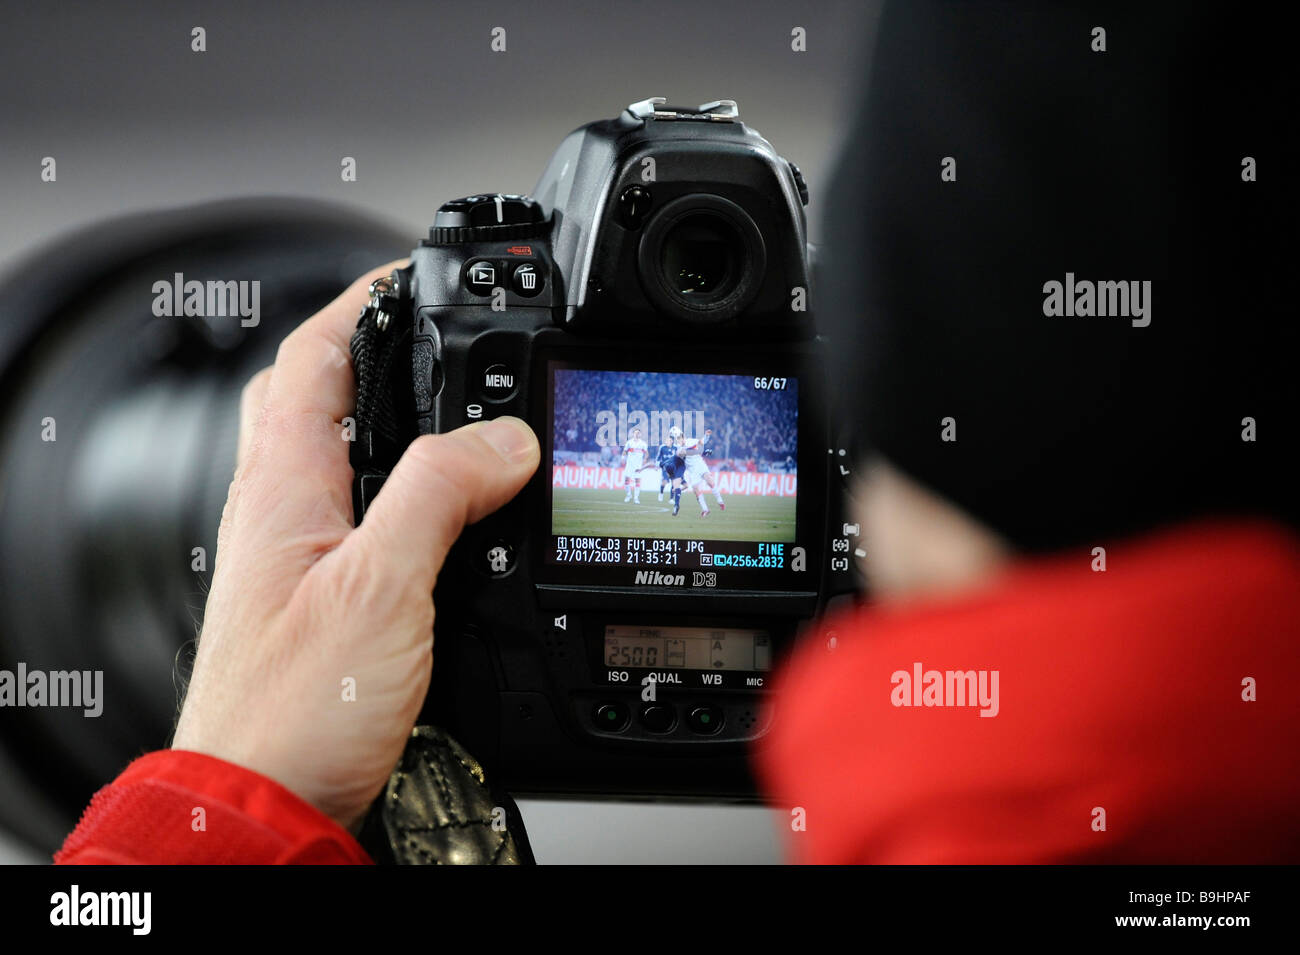 Sports photgrapher using a Nikon D3 - Stock Image